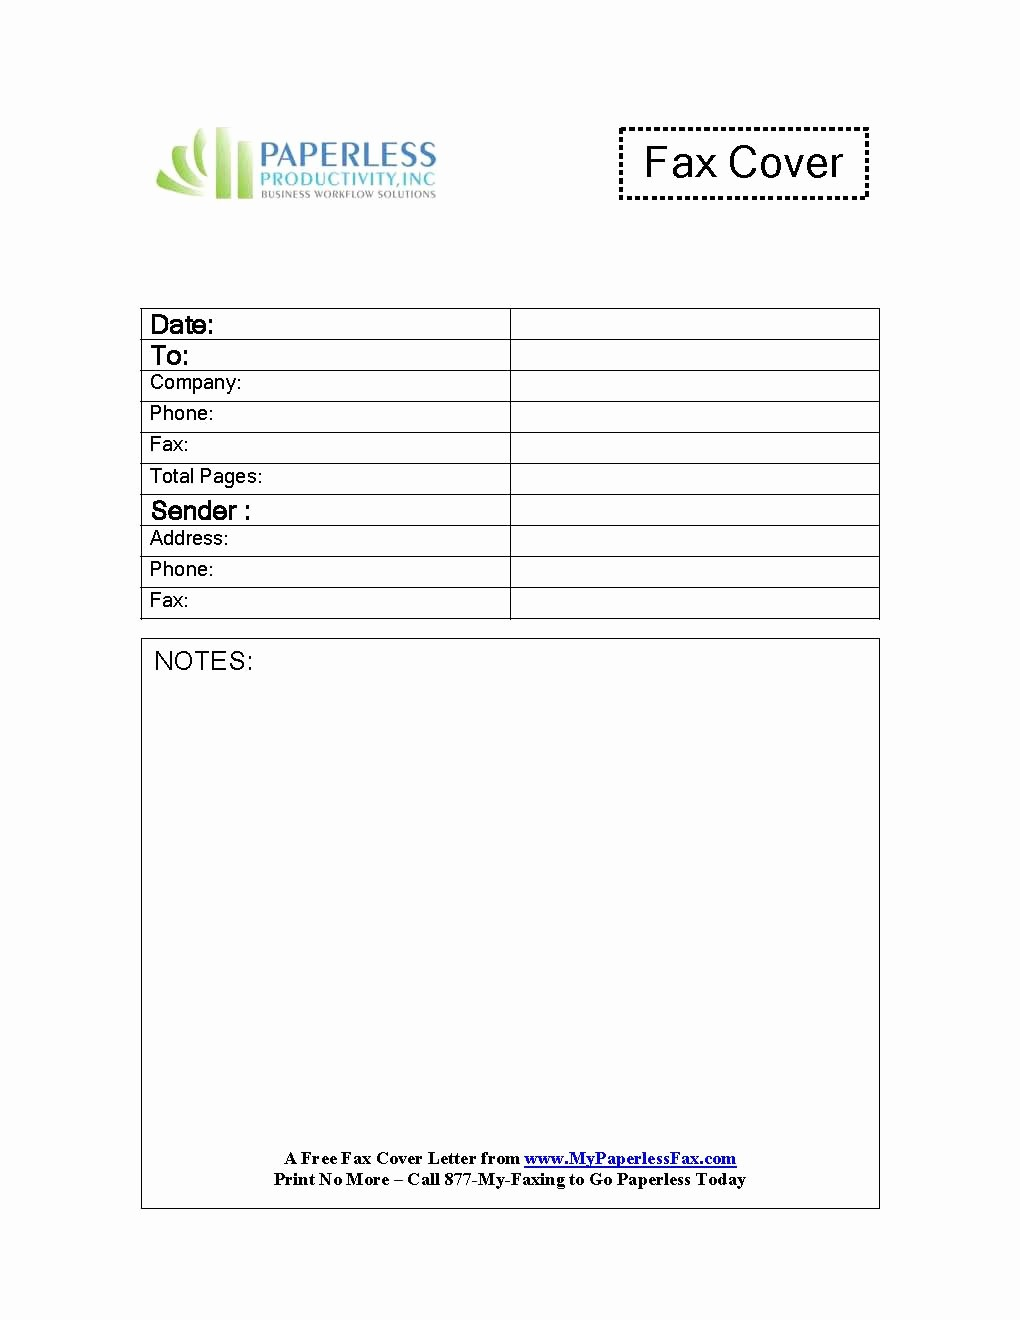 fax cover sheet google doc